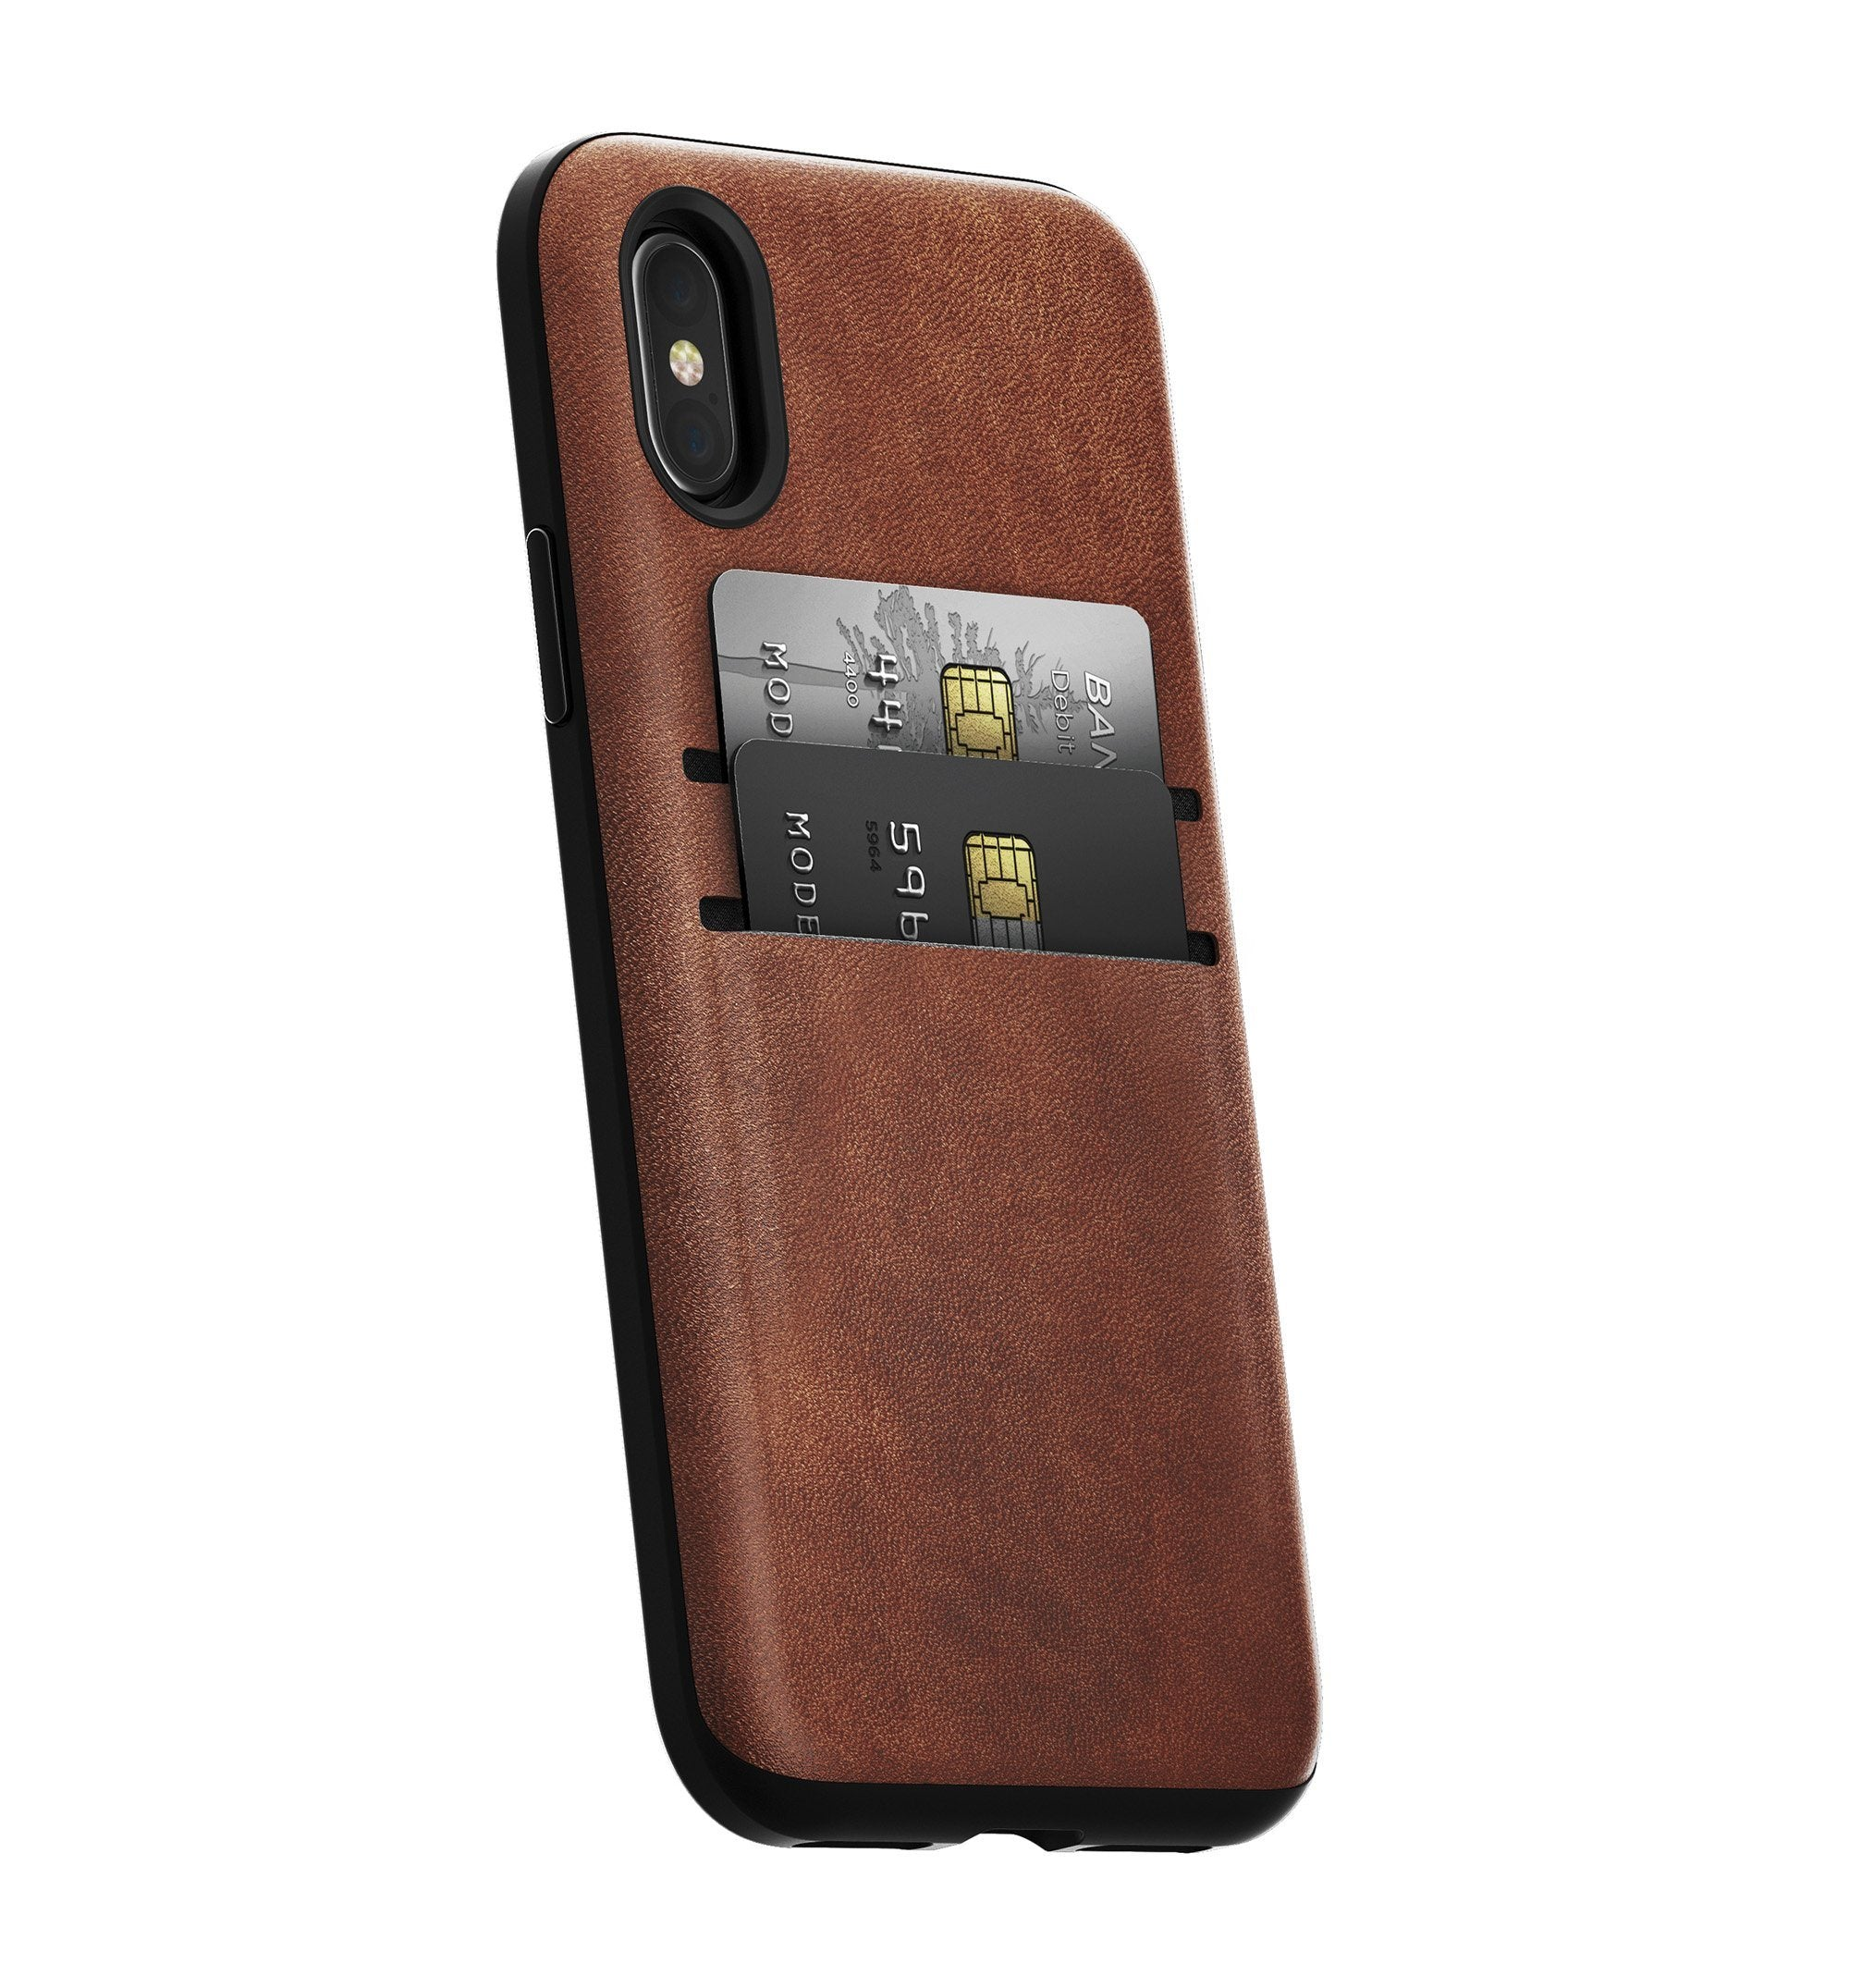 detailed look b41e1 59f0d Nomad Rugged Leather Wallet Case - Rustic Brown - iPhone X